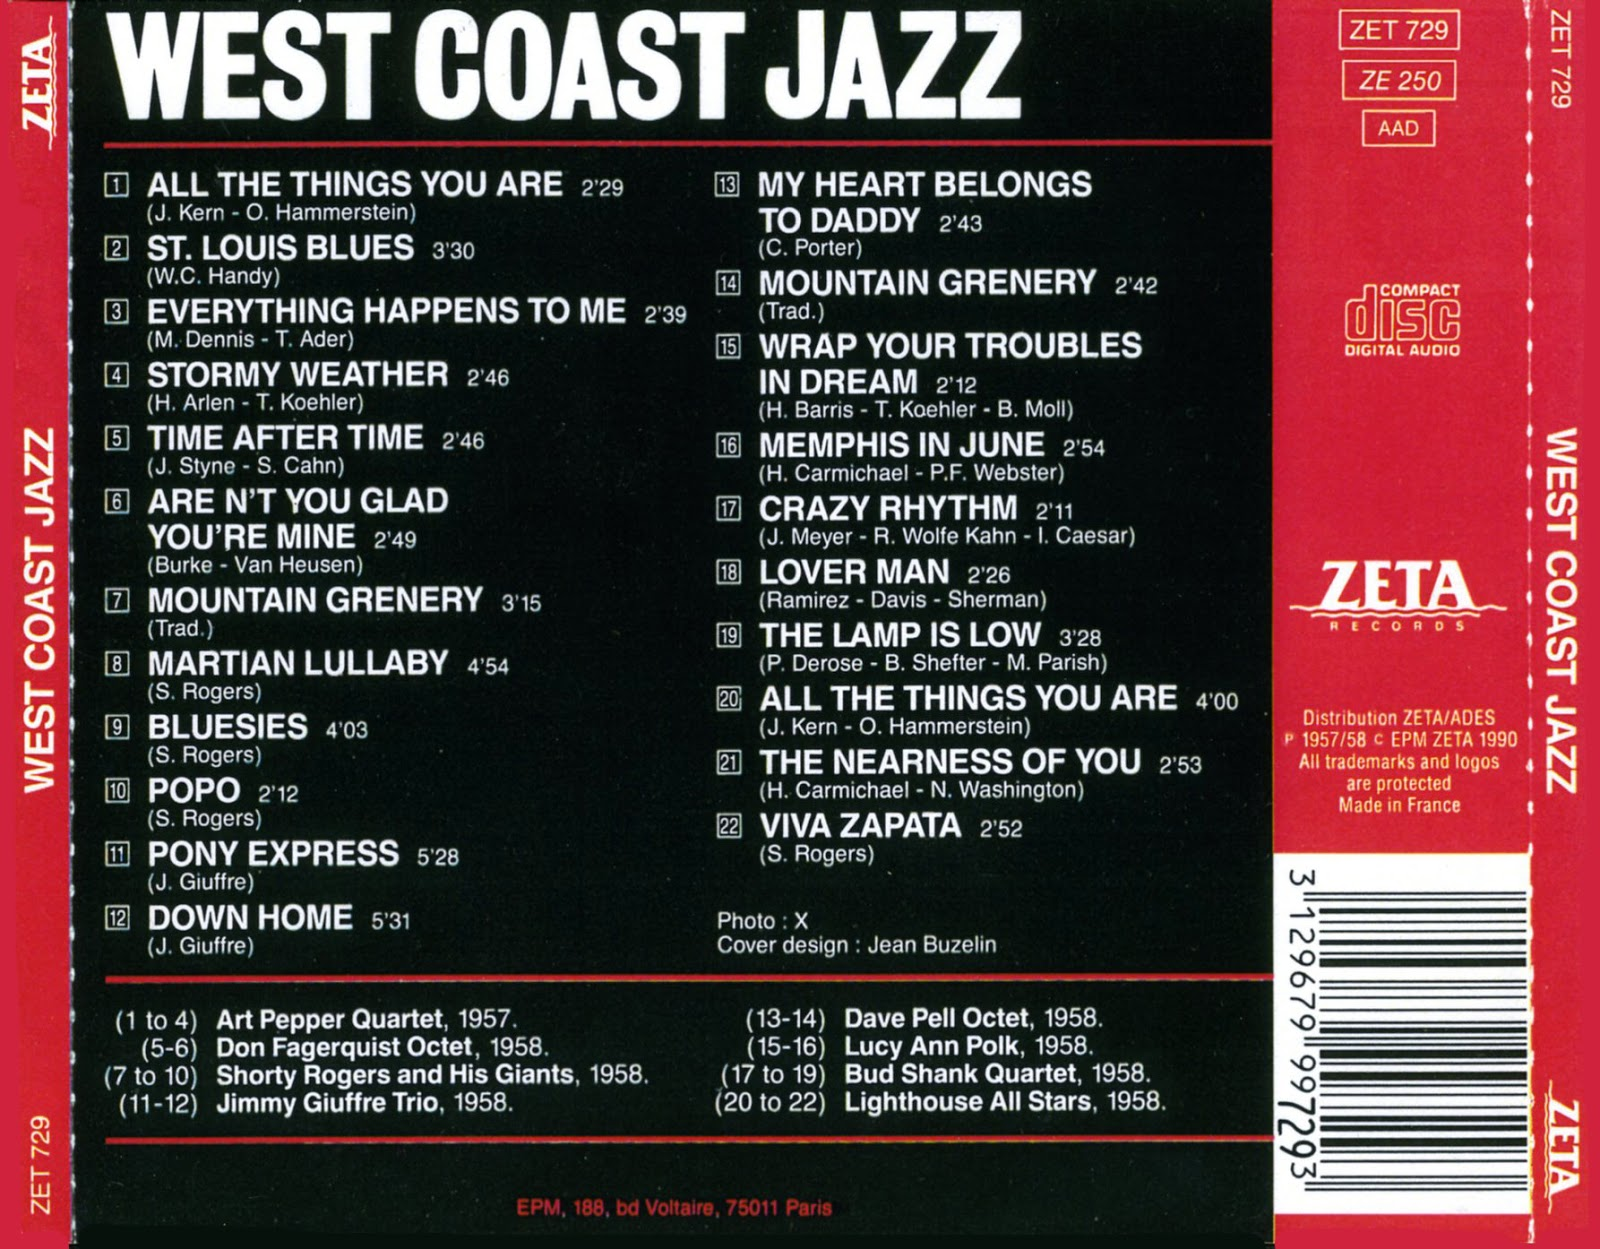 West coast jazz